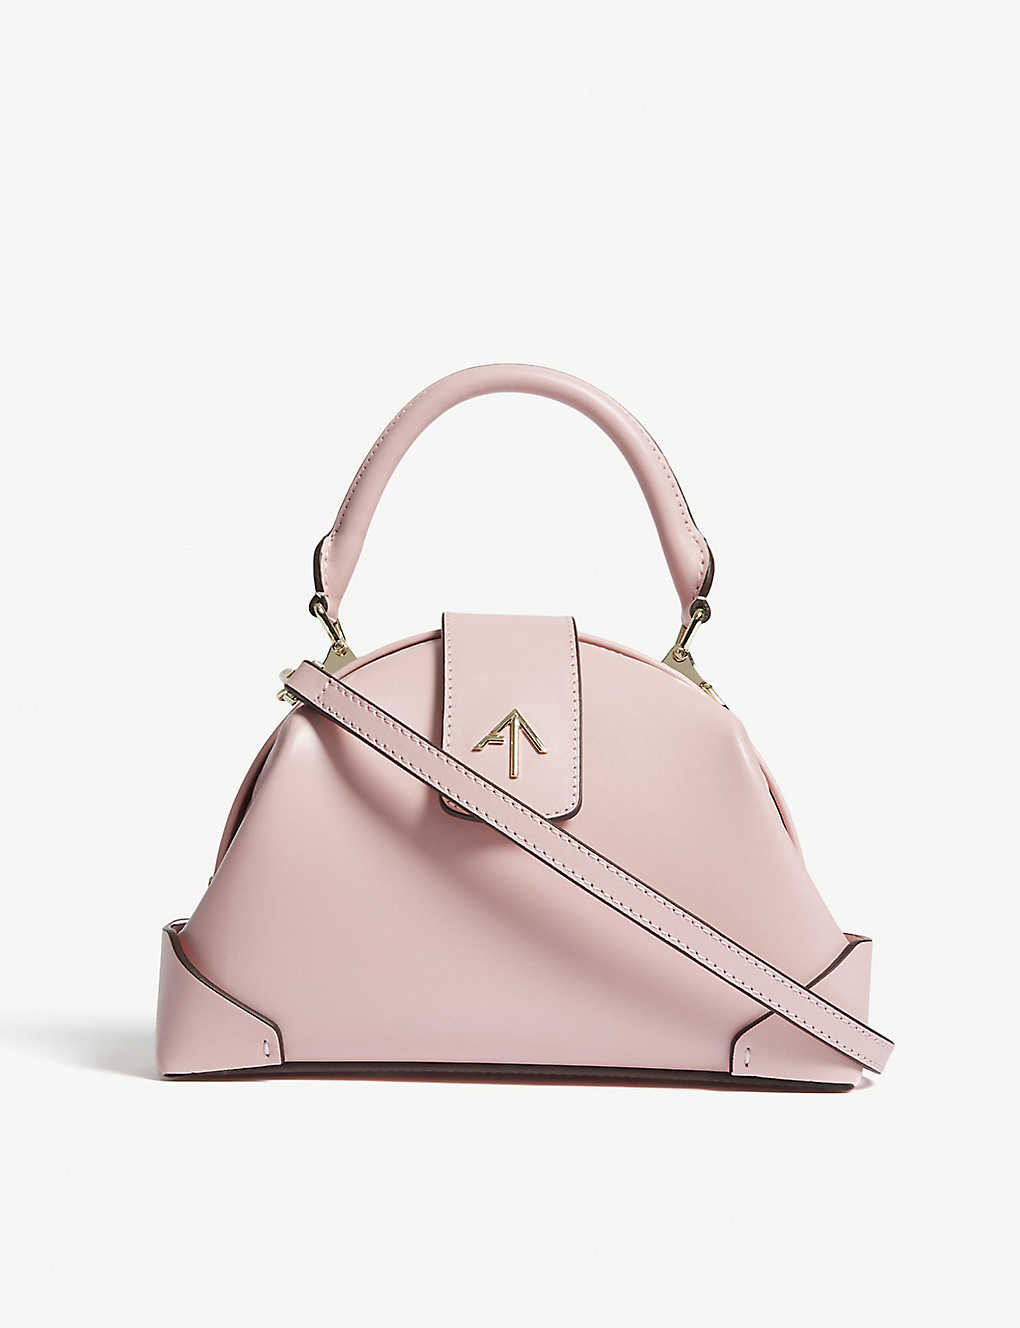 Manu Atelier pink top handle bag